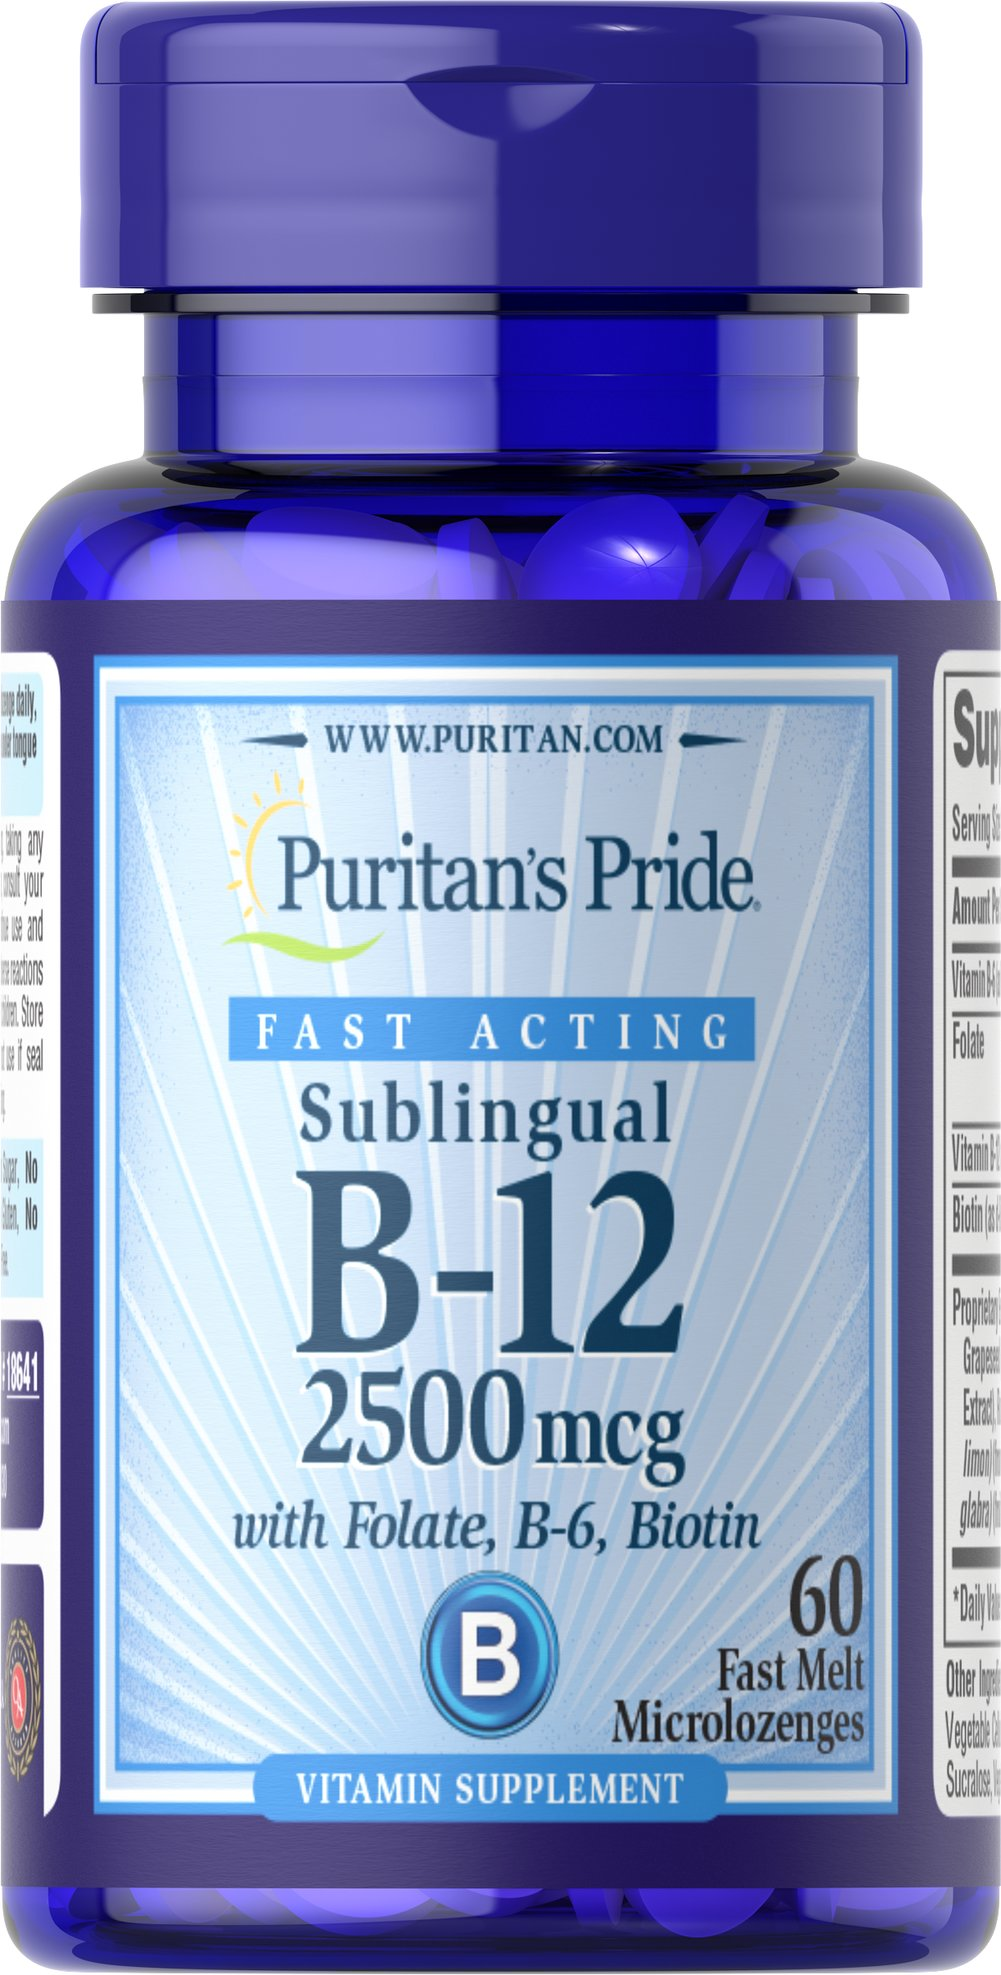 Vitamin B-12 2500 mcg Sublingual with Folic Acid, Vitamin B-6 and Biotin <p>Sublingual microlozenges dissolve easily in your mouth</p><p>An easy way to nourish a healthy heart and circulatory system**</p><p>Helps develop and regenerate red blood cells**</p><p>Contributes to proper metabolic functioning**</p><p>Plays a role in energy metabolism in the body**</p> 60 Microlozenges 2500 mcg $19.59